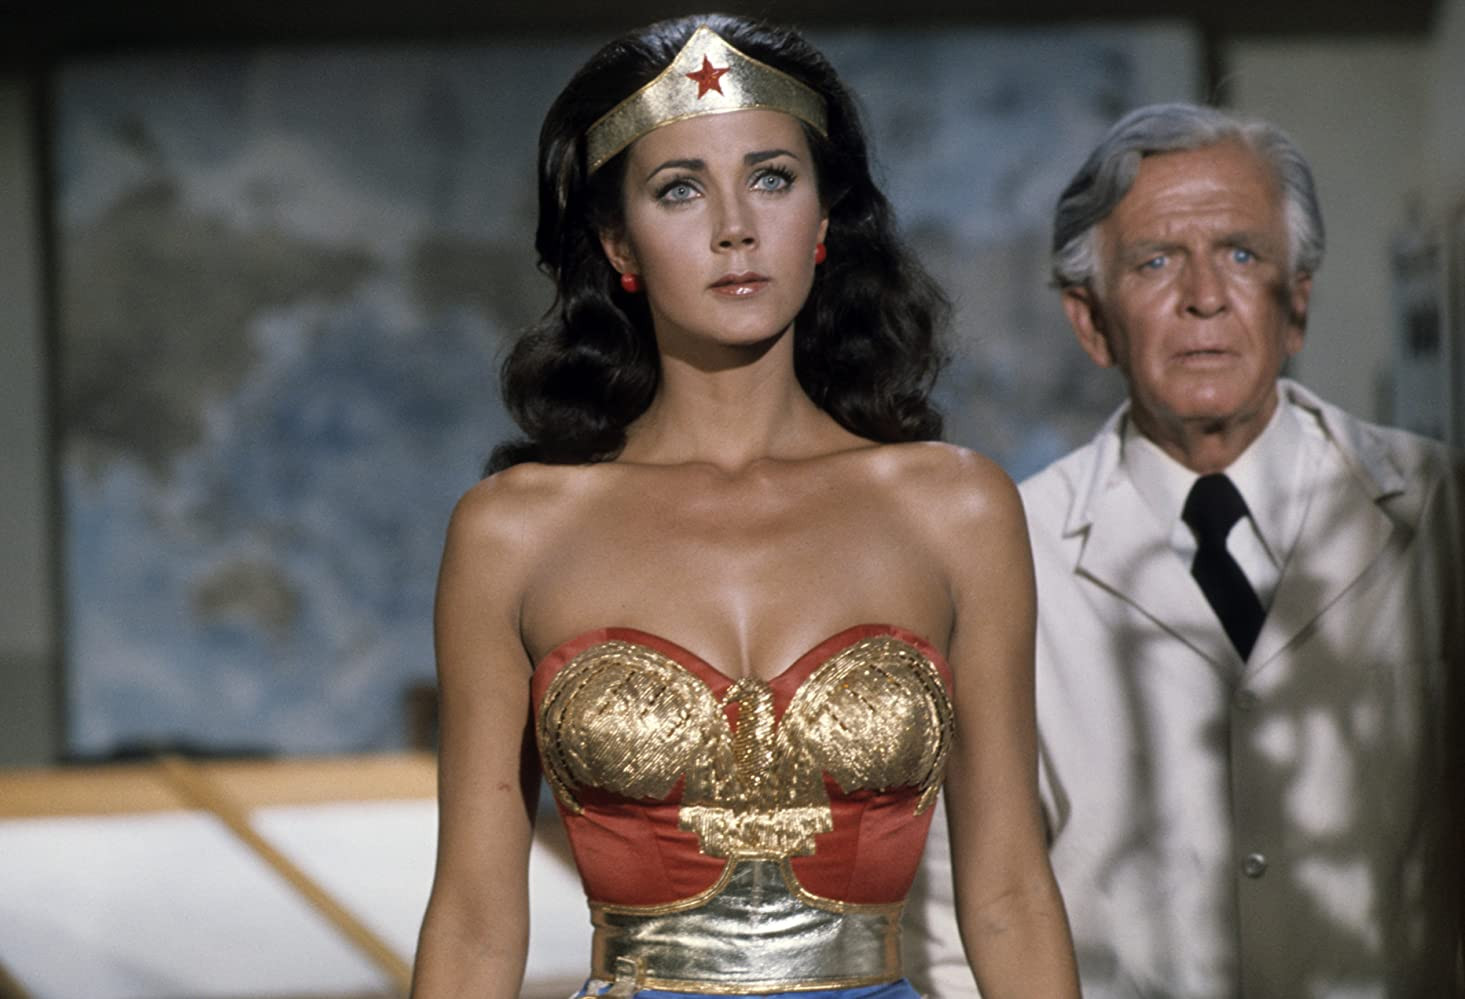 Lynda Carter and Hayden Rorke in Wonder Woman (1975)